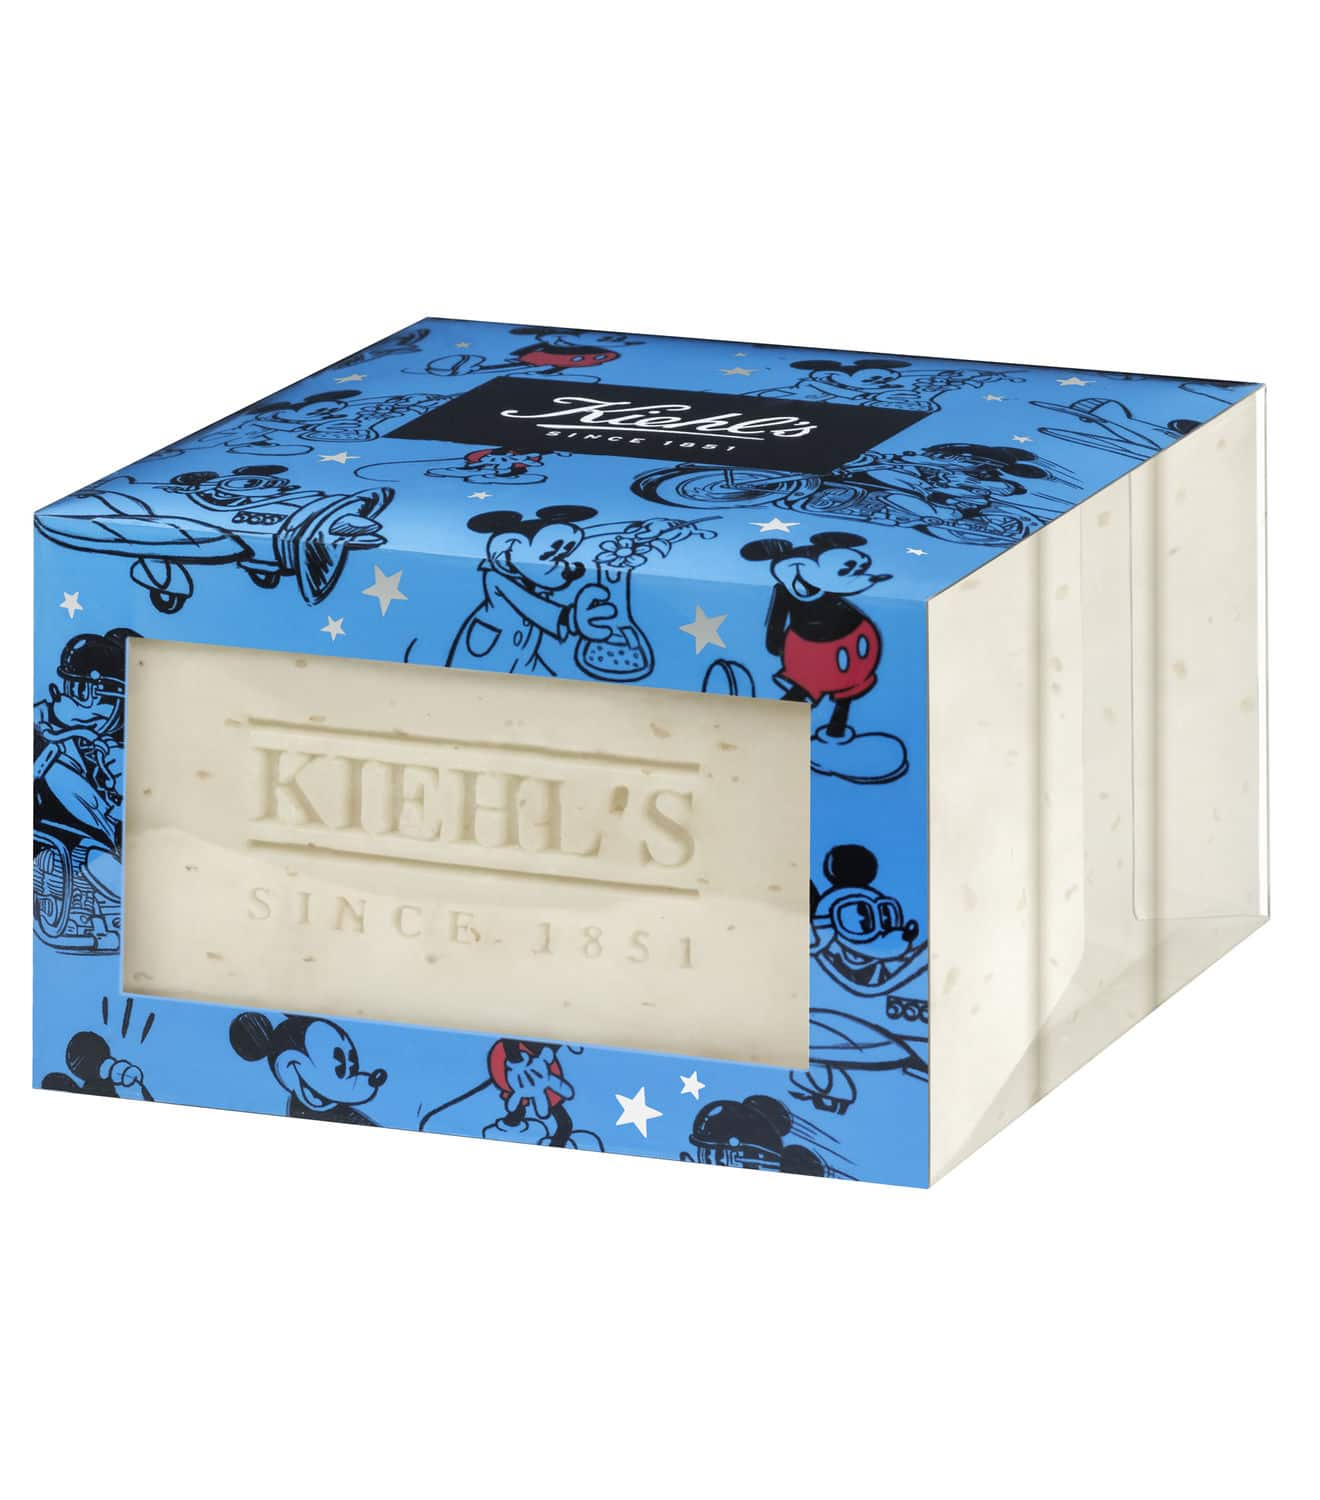 Disney x Kiehl's Ultimate Man Body Scrub Soap trio $26.25 + Free Shipping